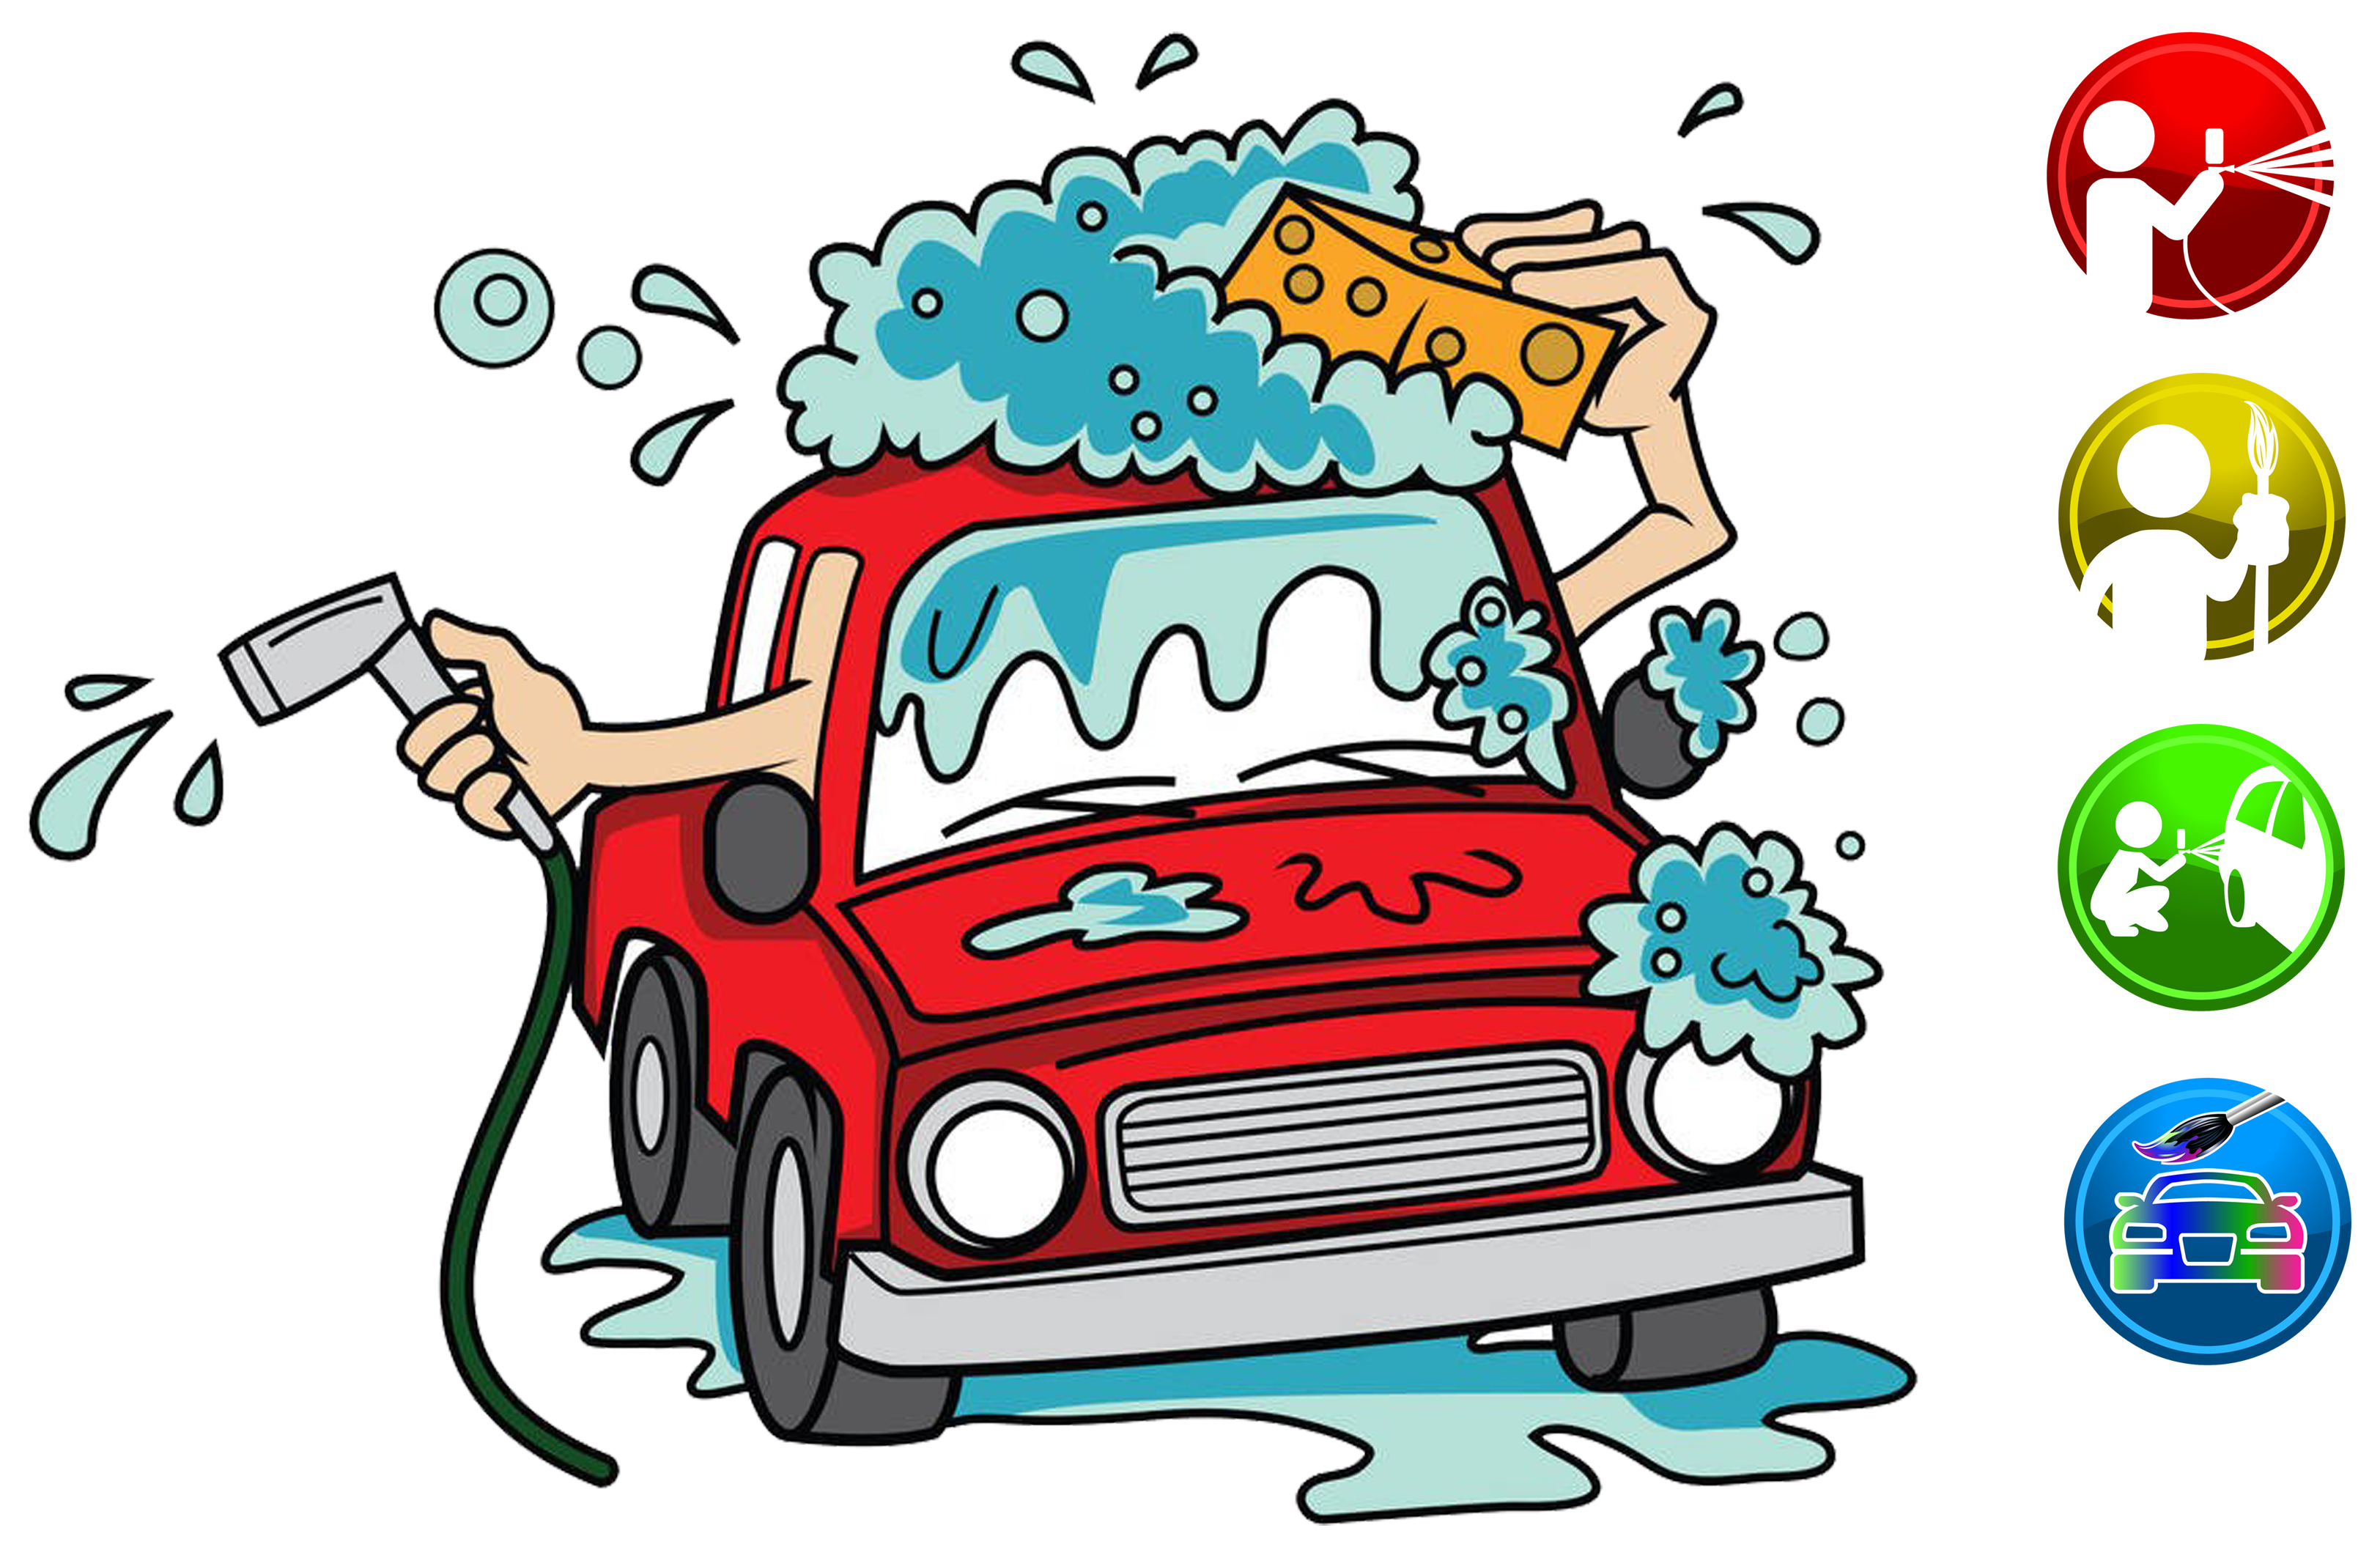 Car detailing clipart vector royalty free Car wash Cartoon Clip art - Cartoon car wash advertisement 3248*2126 ... vector royalty free